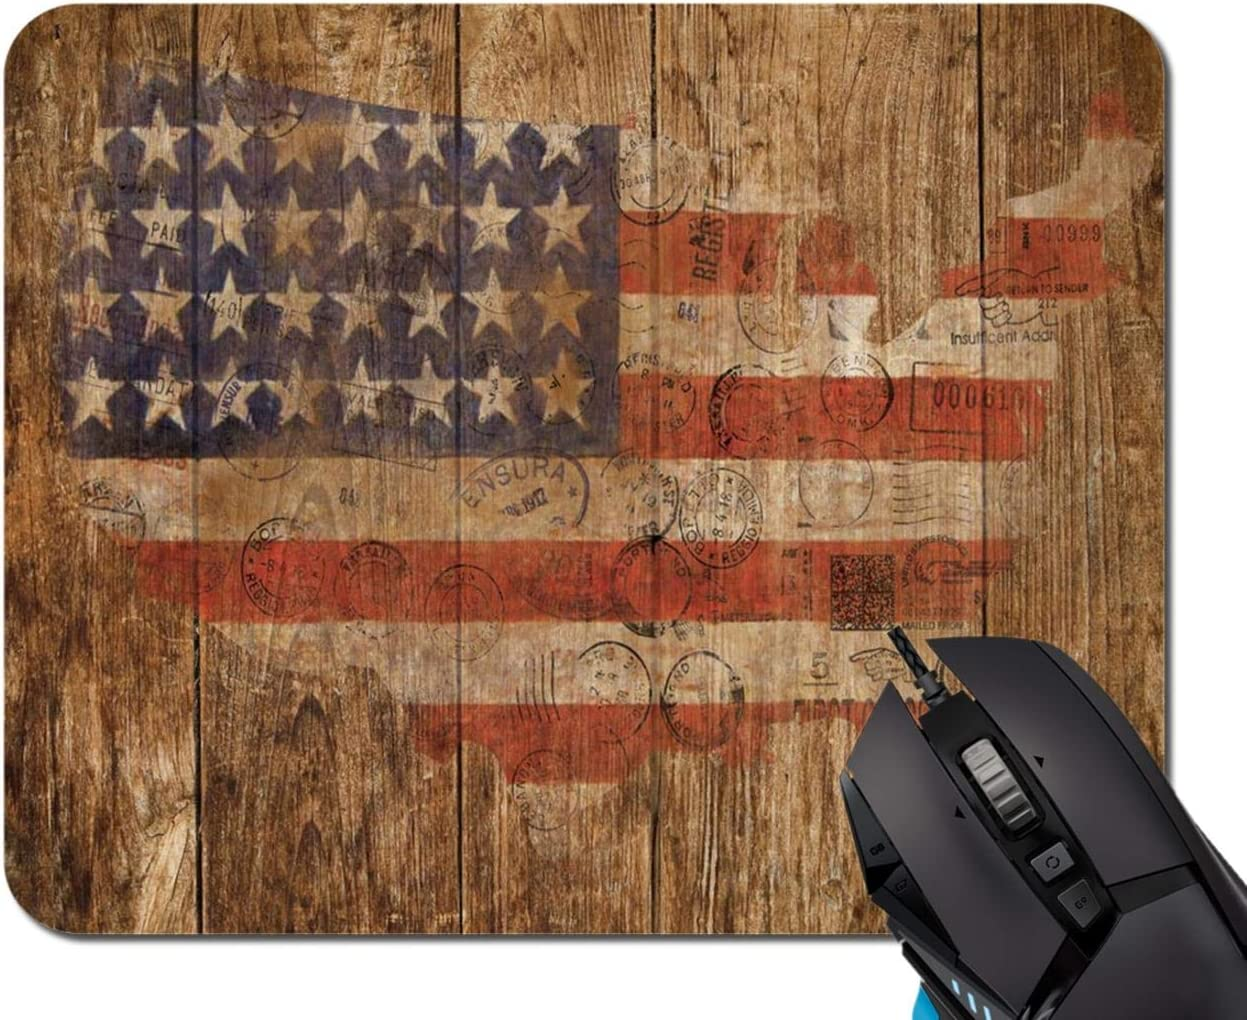 Mouse Pad,American Flag Vintage Art Wooden Wall Mouse Pad Rectangle Non-Slip Rubber Mousepad Office Accessories Desk Decor Mouse Pads for Computers Laptop